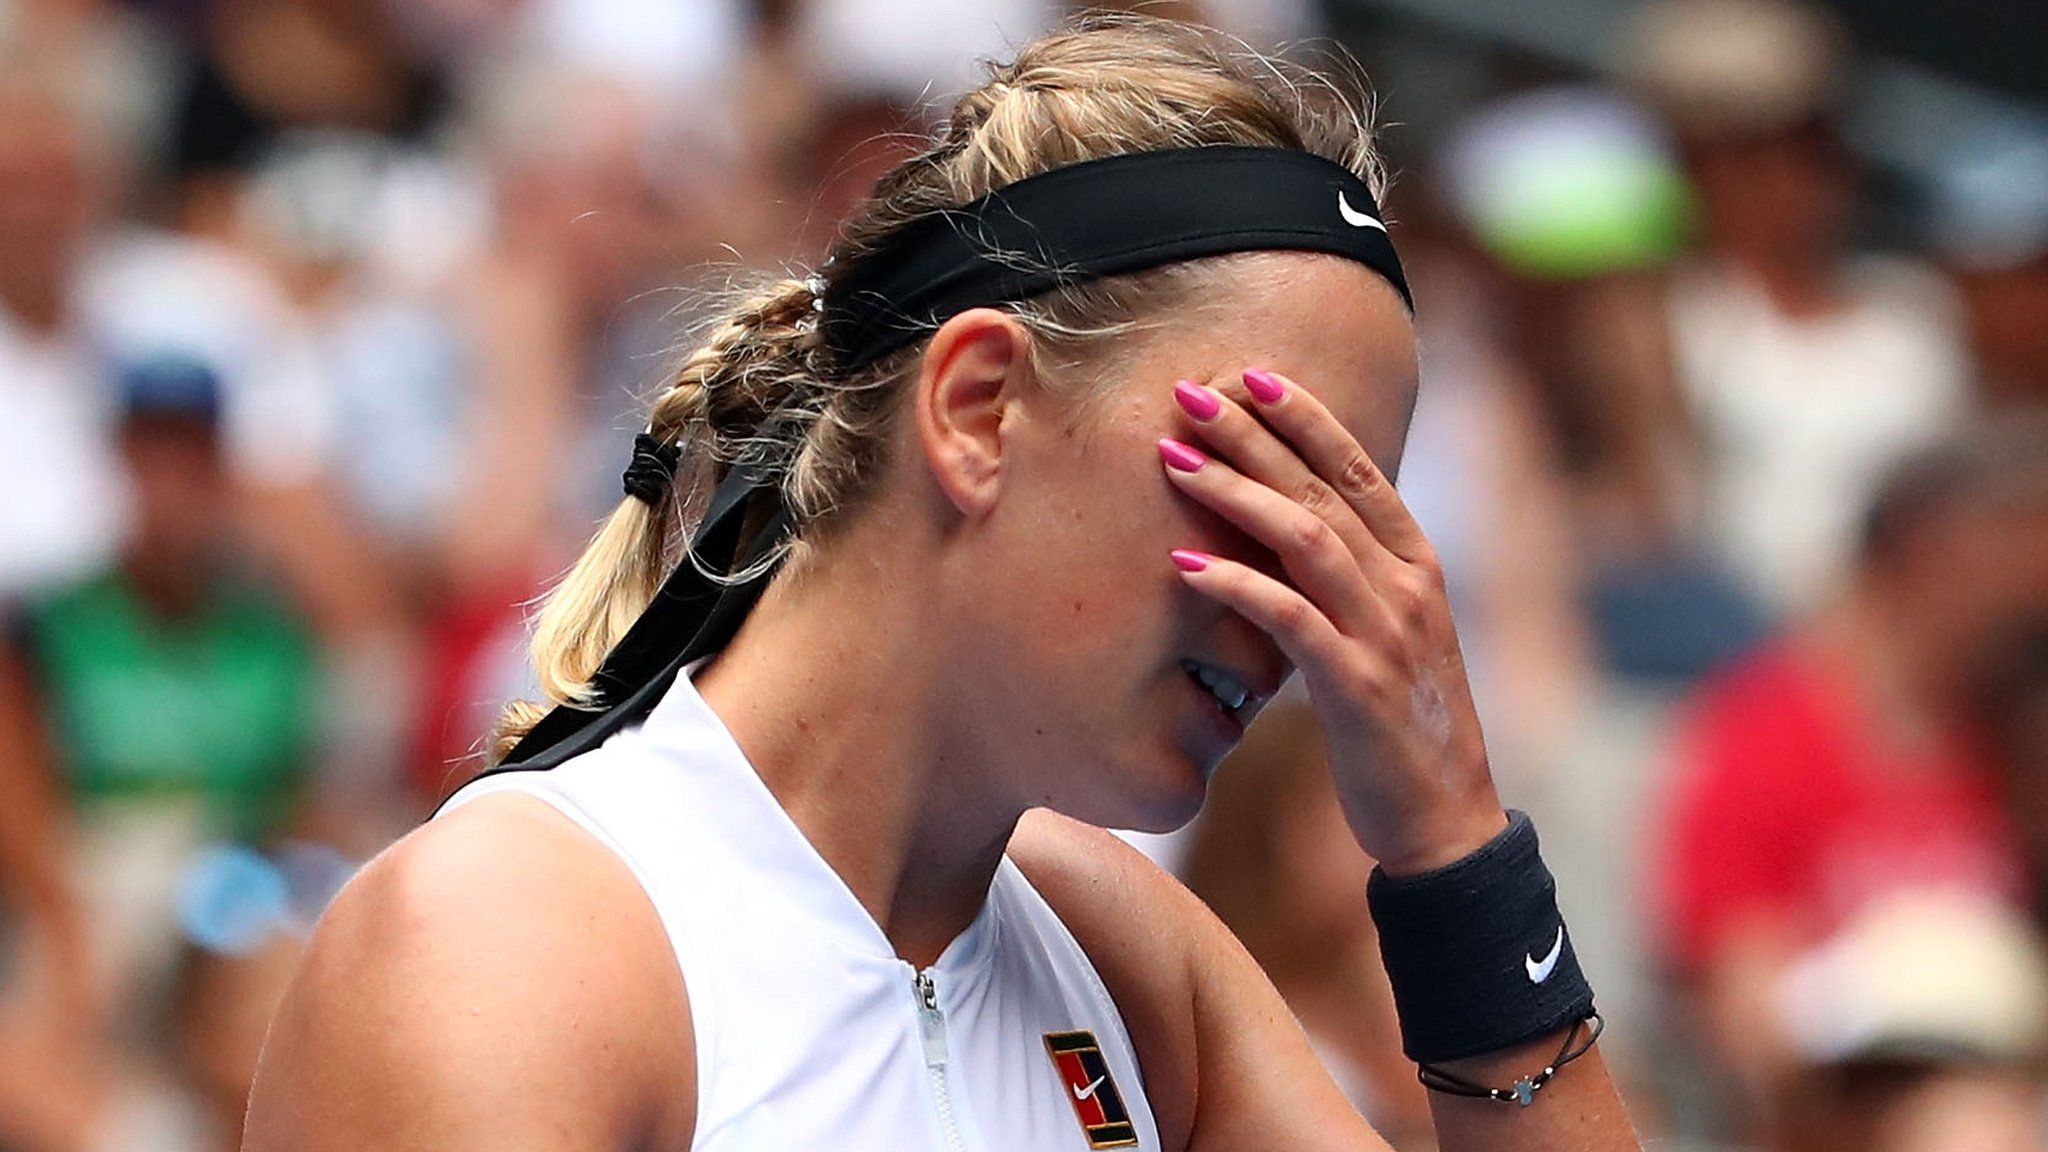 Australian Open: Victoria Azarenka 'struggling' but will 'come back stronger' after loss